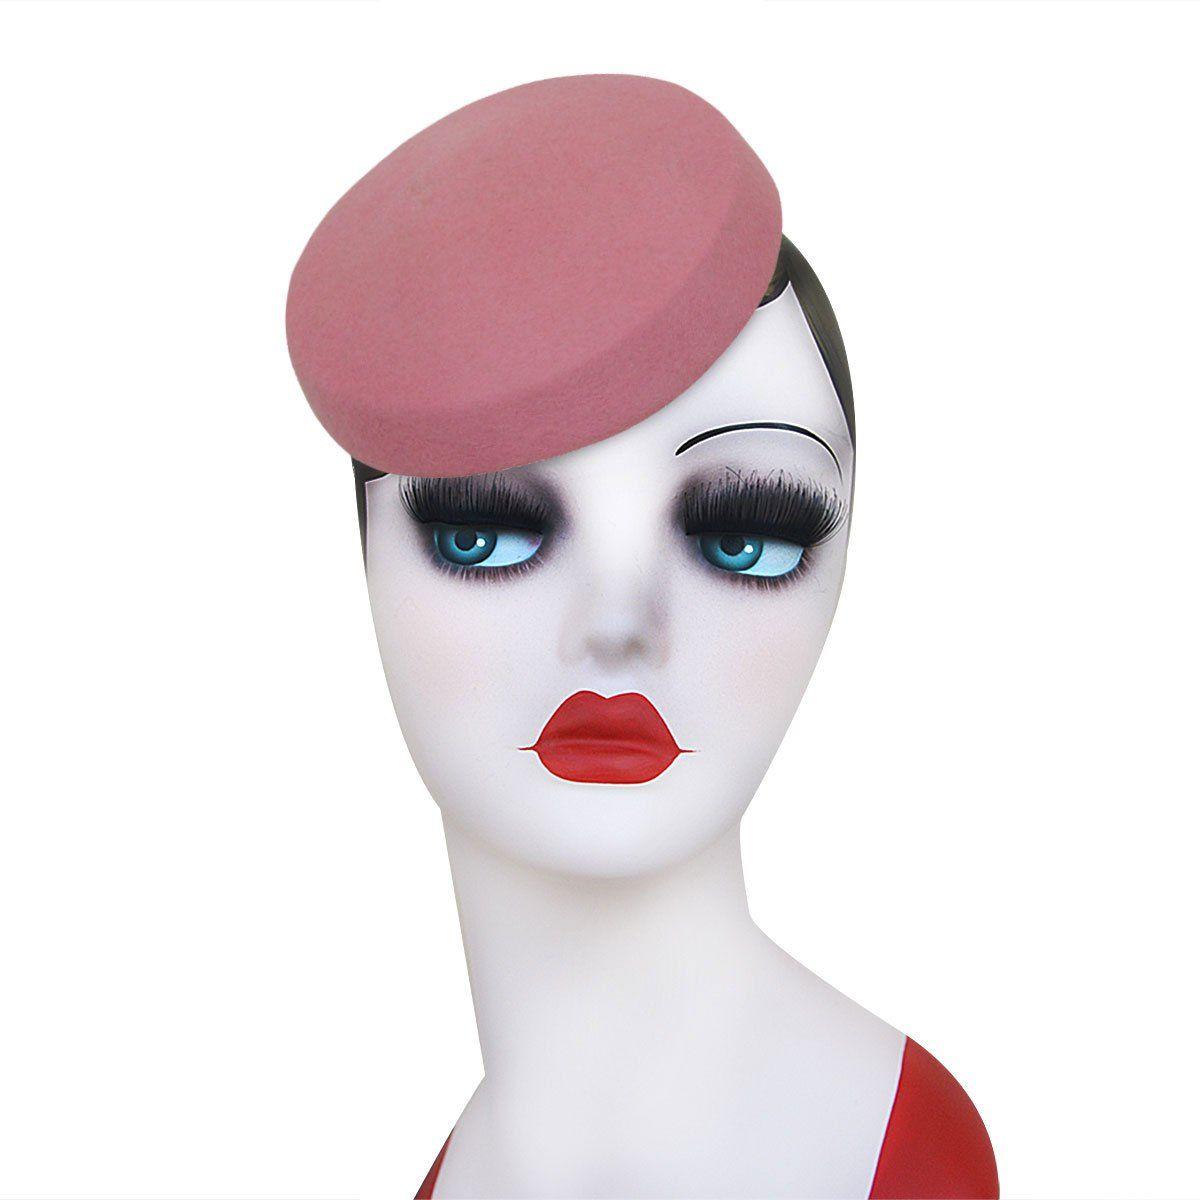 9e13e55c52ca2 Possible Dolores Umbridge hat  Circle Wool Felt Pillbox Beret Hat Millinery  Fascinator Base Cocktail Party A215 (Camel) at Amazon Women s Clothing  store